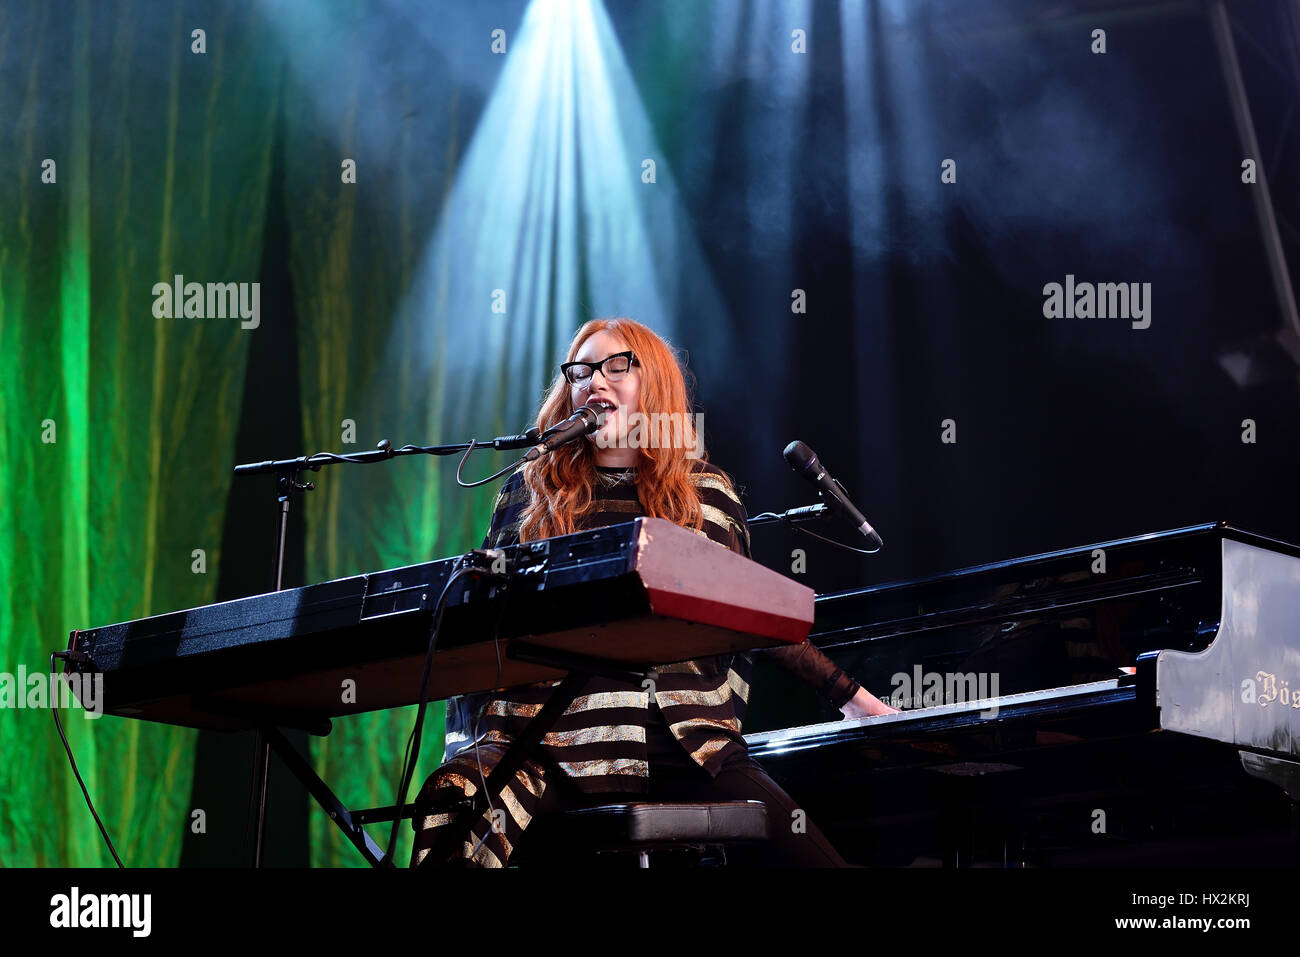 BARCELONA - MAY 30: Tori Amos (singer, songwriter, pianist and composer) performs at Primavera Sound 2015 Festival Stock Photo